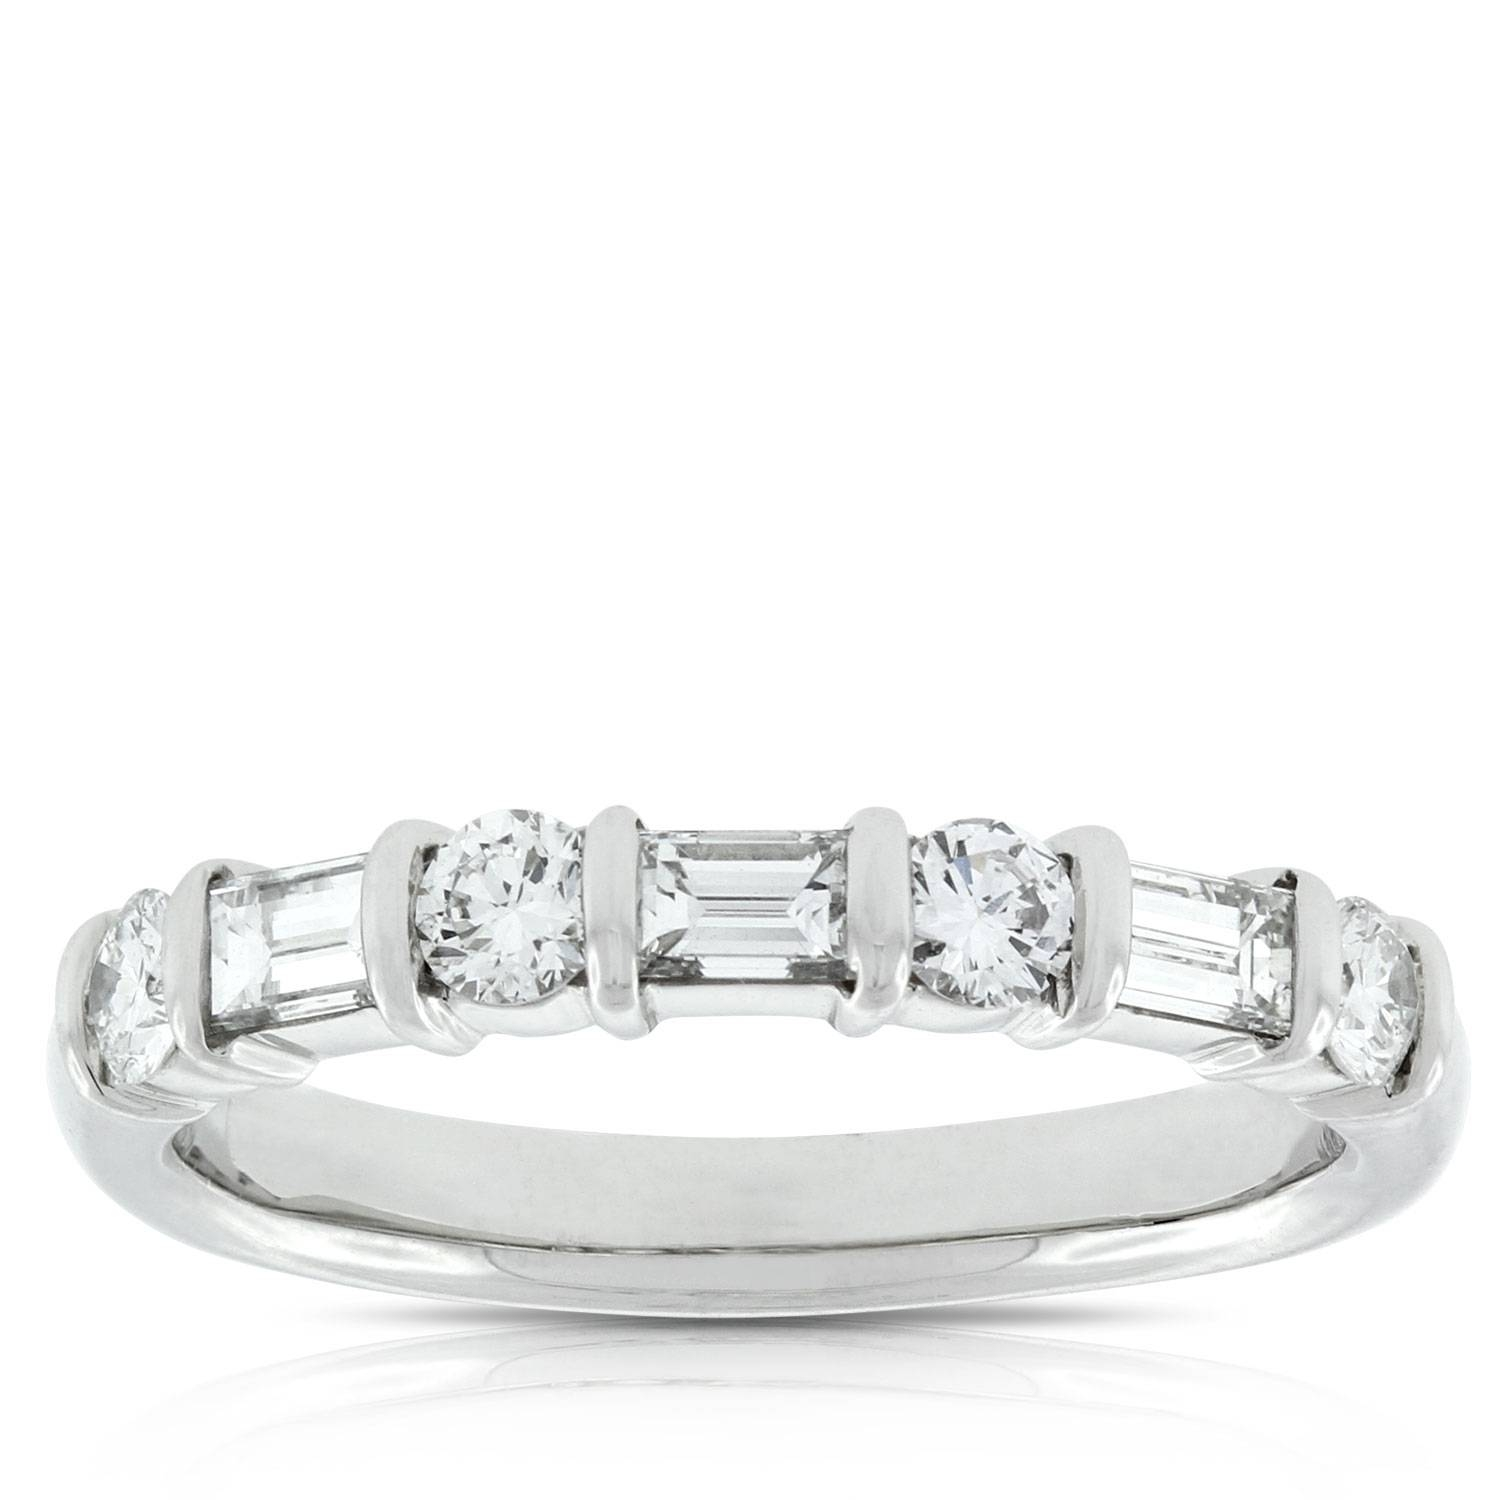 Baguette & Round Diamond Ring, 3/4 Carat In Platinum | Ben Bridge With Current Baguette Anniversary Rings (View 5 of 25)